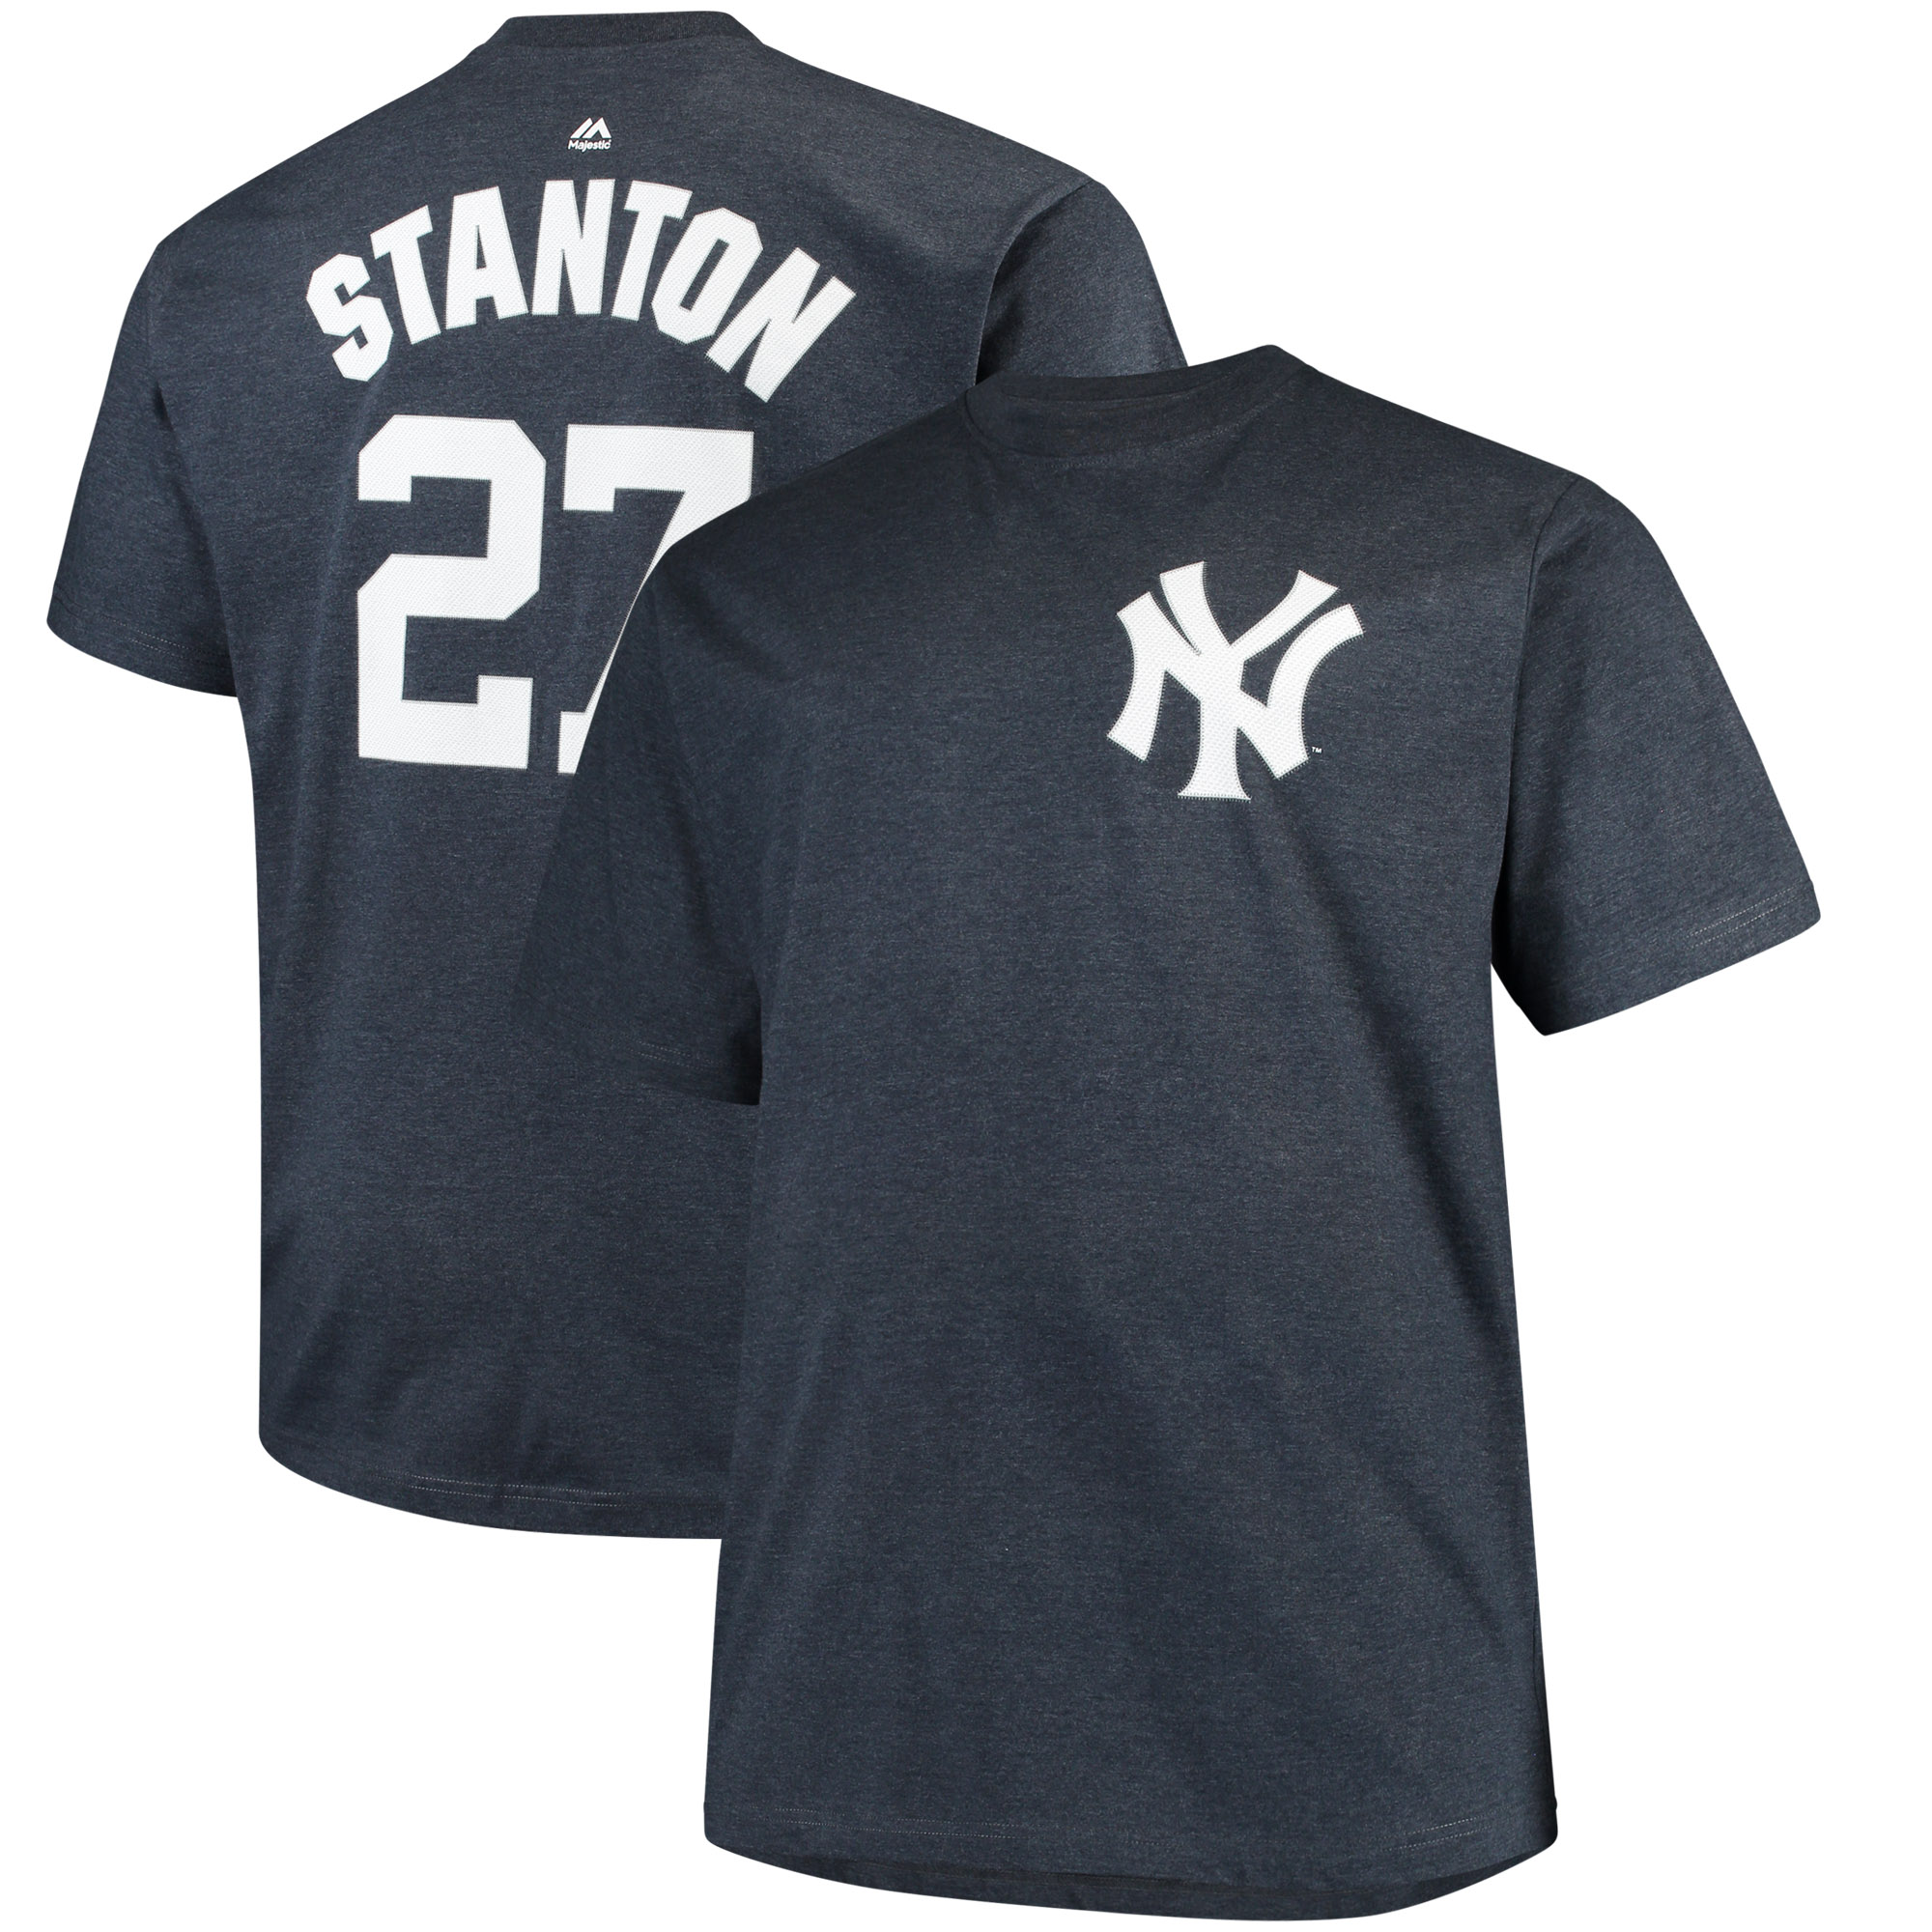 Men's Majestic Giancarlo Stanton Heathered Navy New York Yankees Big & Tall Name & Number T-Shirt